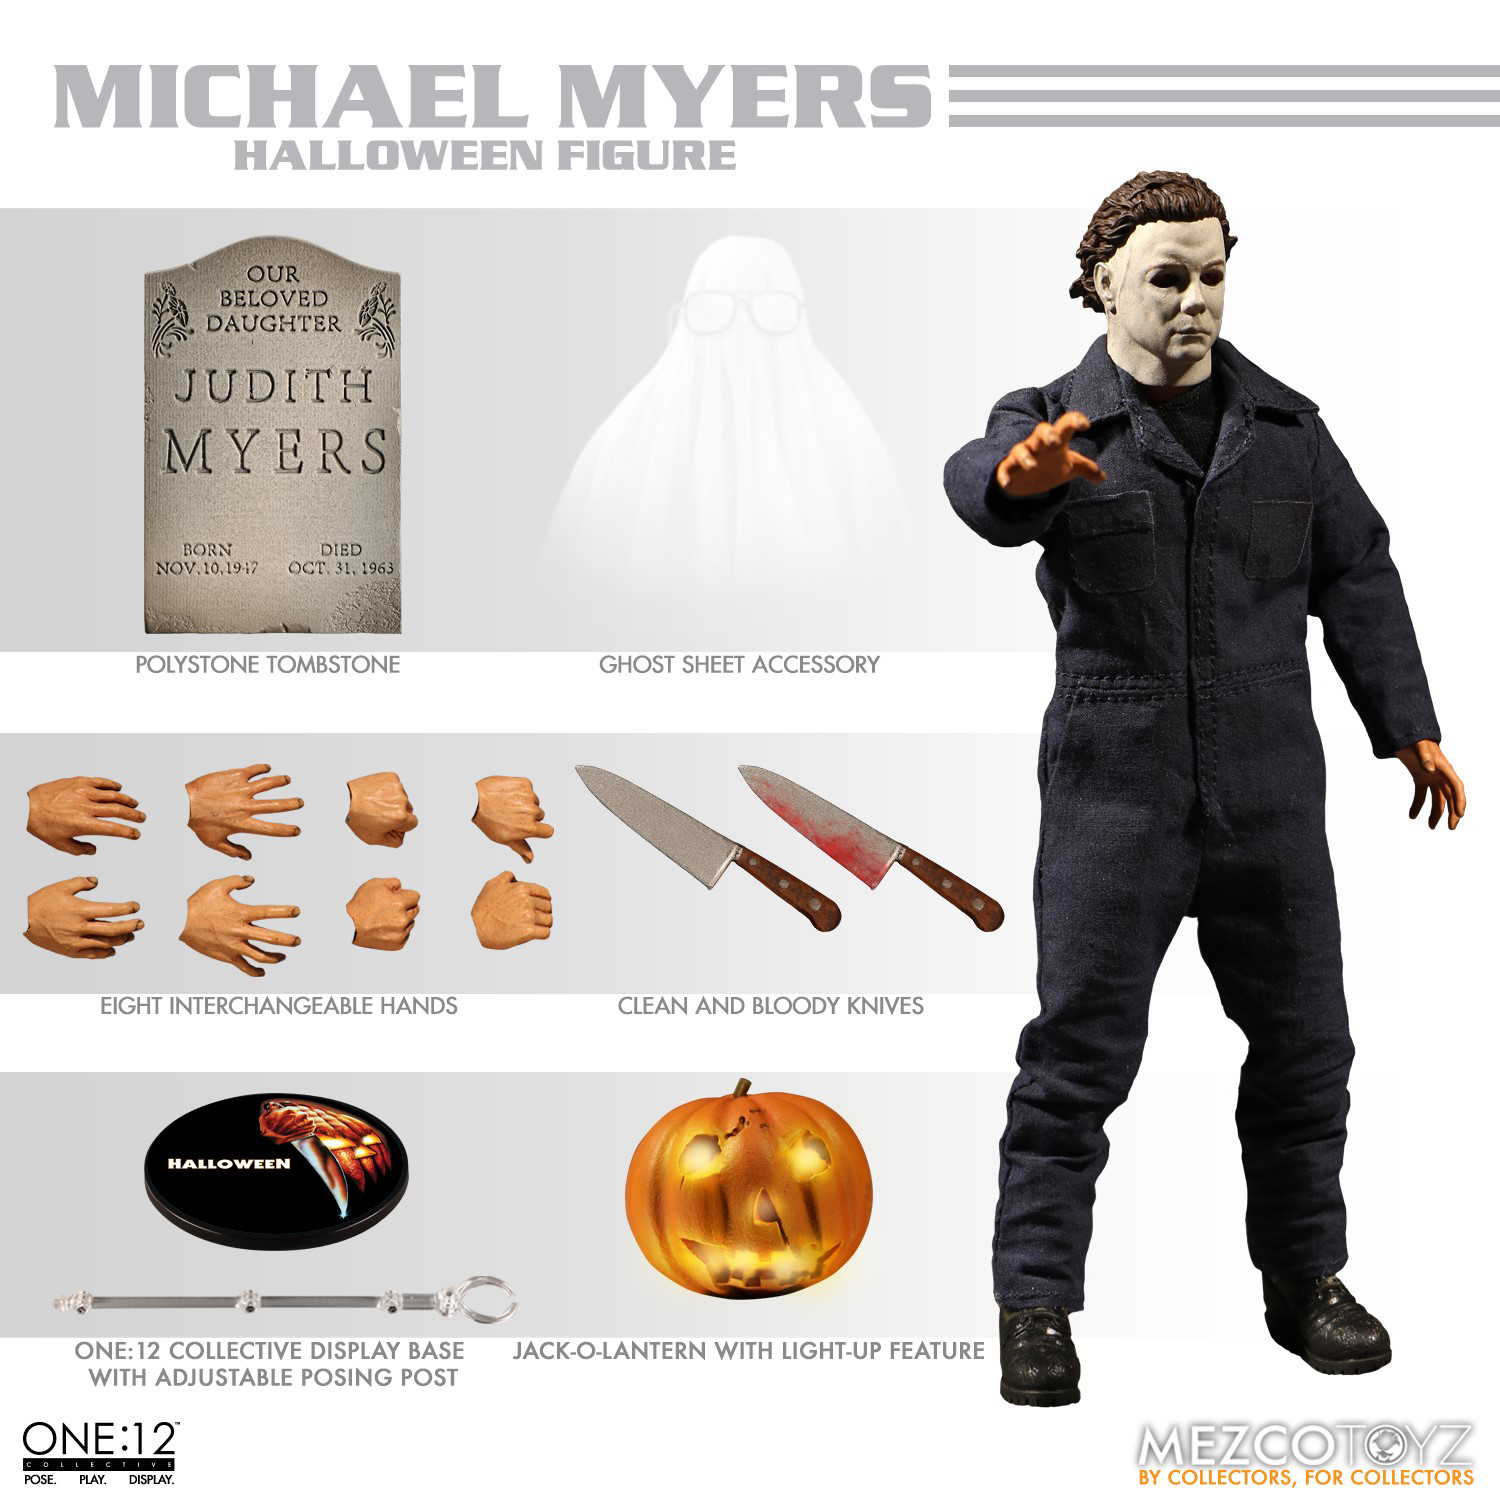 One-12 Collective - Michael Myers Action Figure